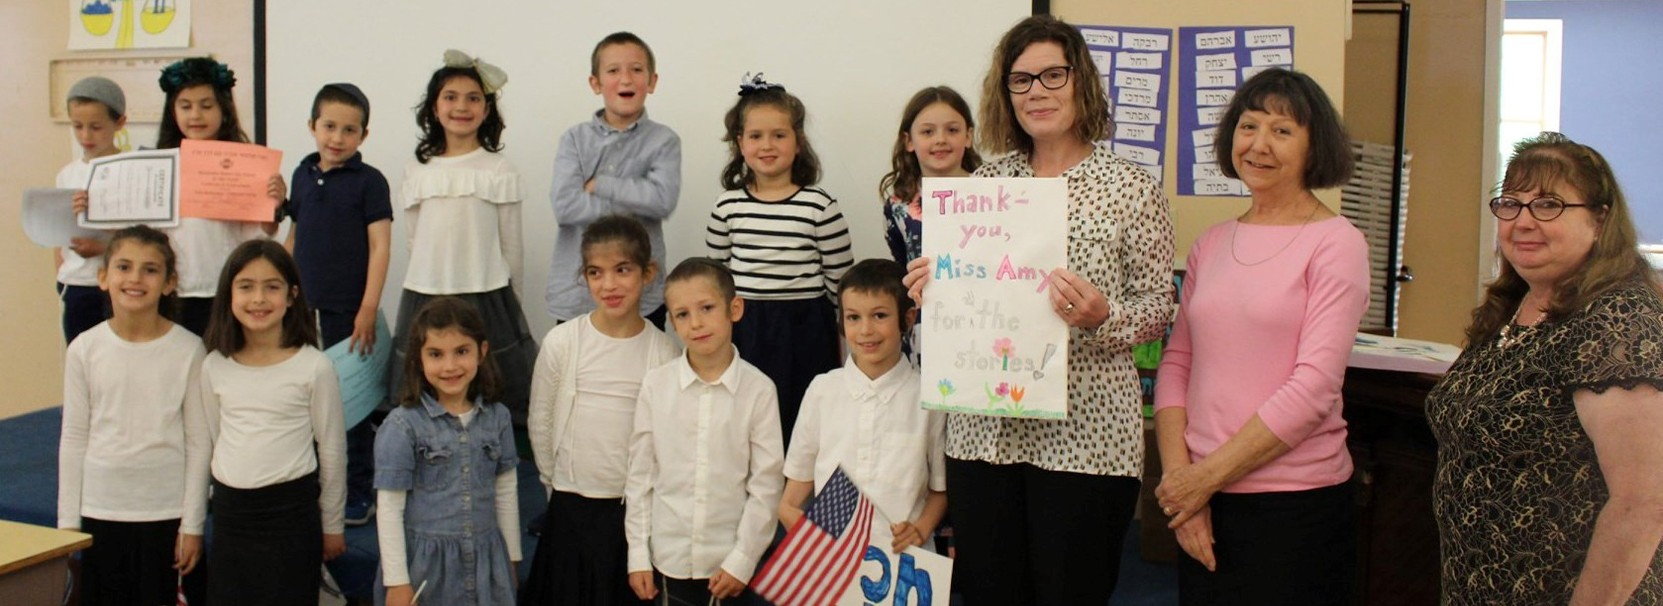 Miss Amy from PJ Library holding a thank you card from group of students gathered around her